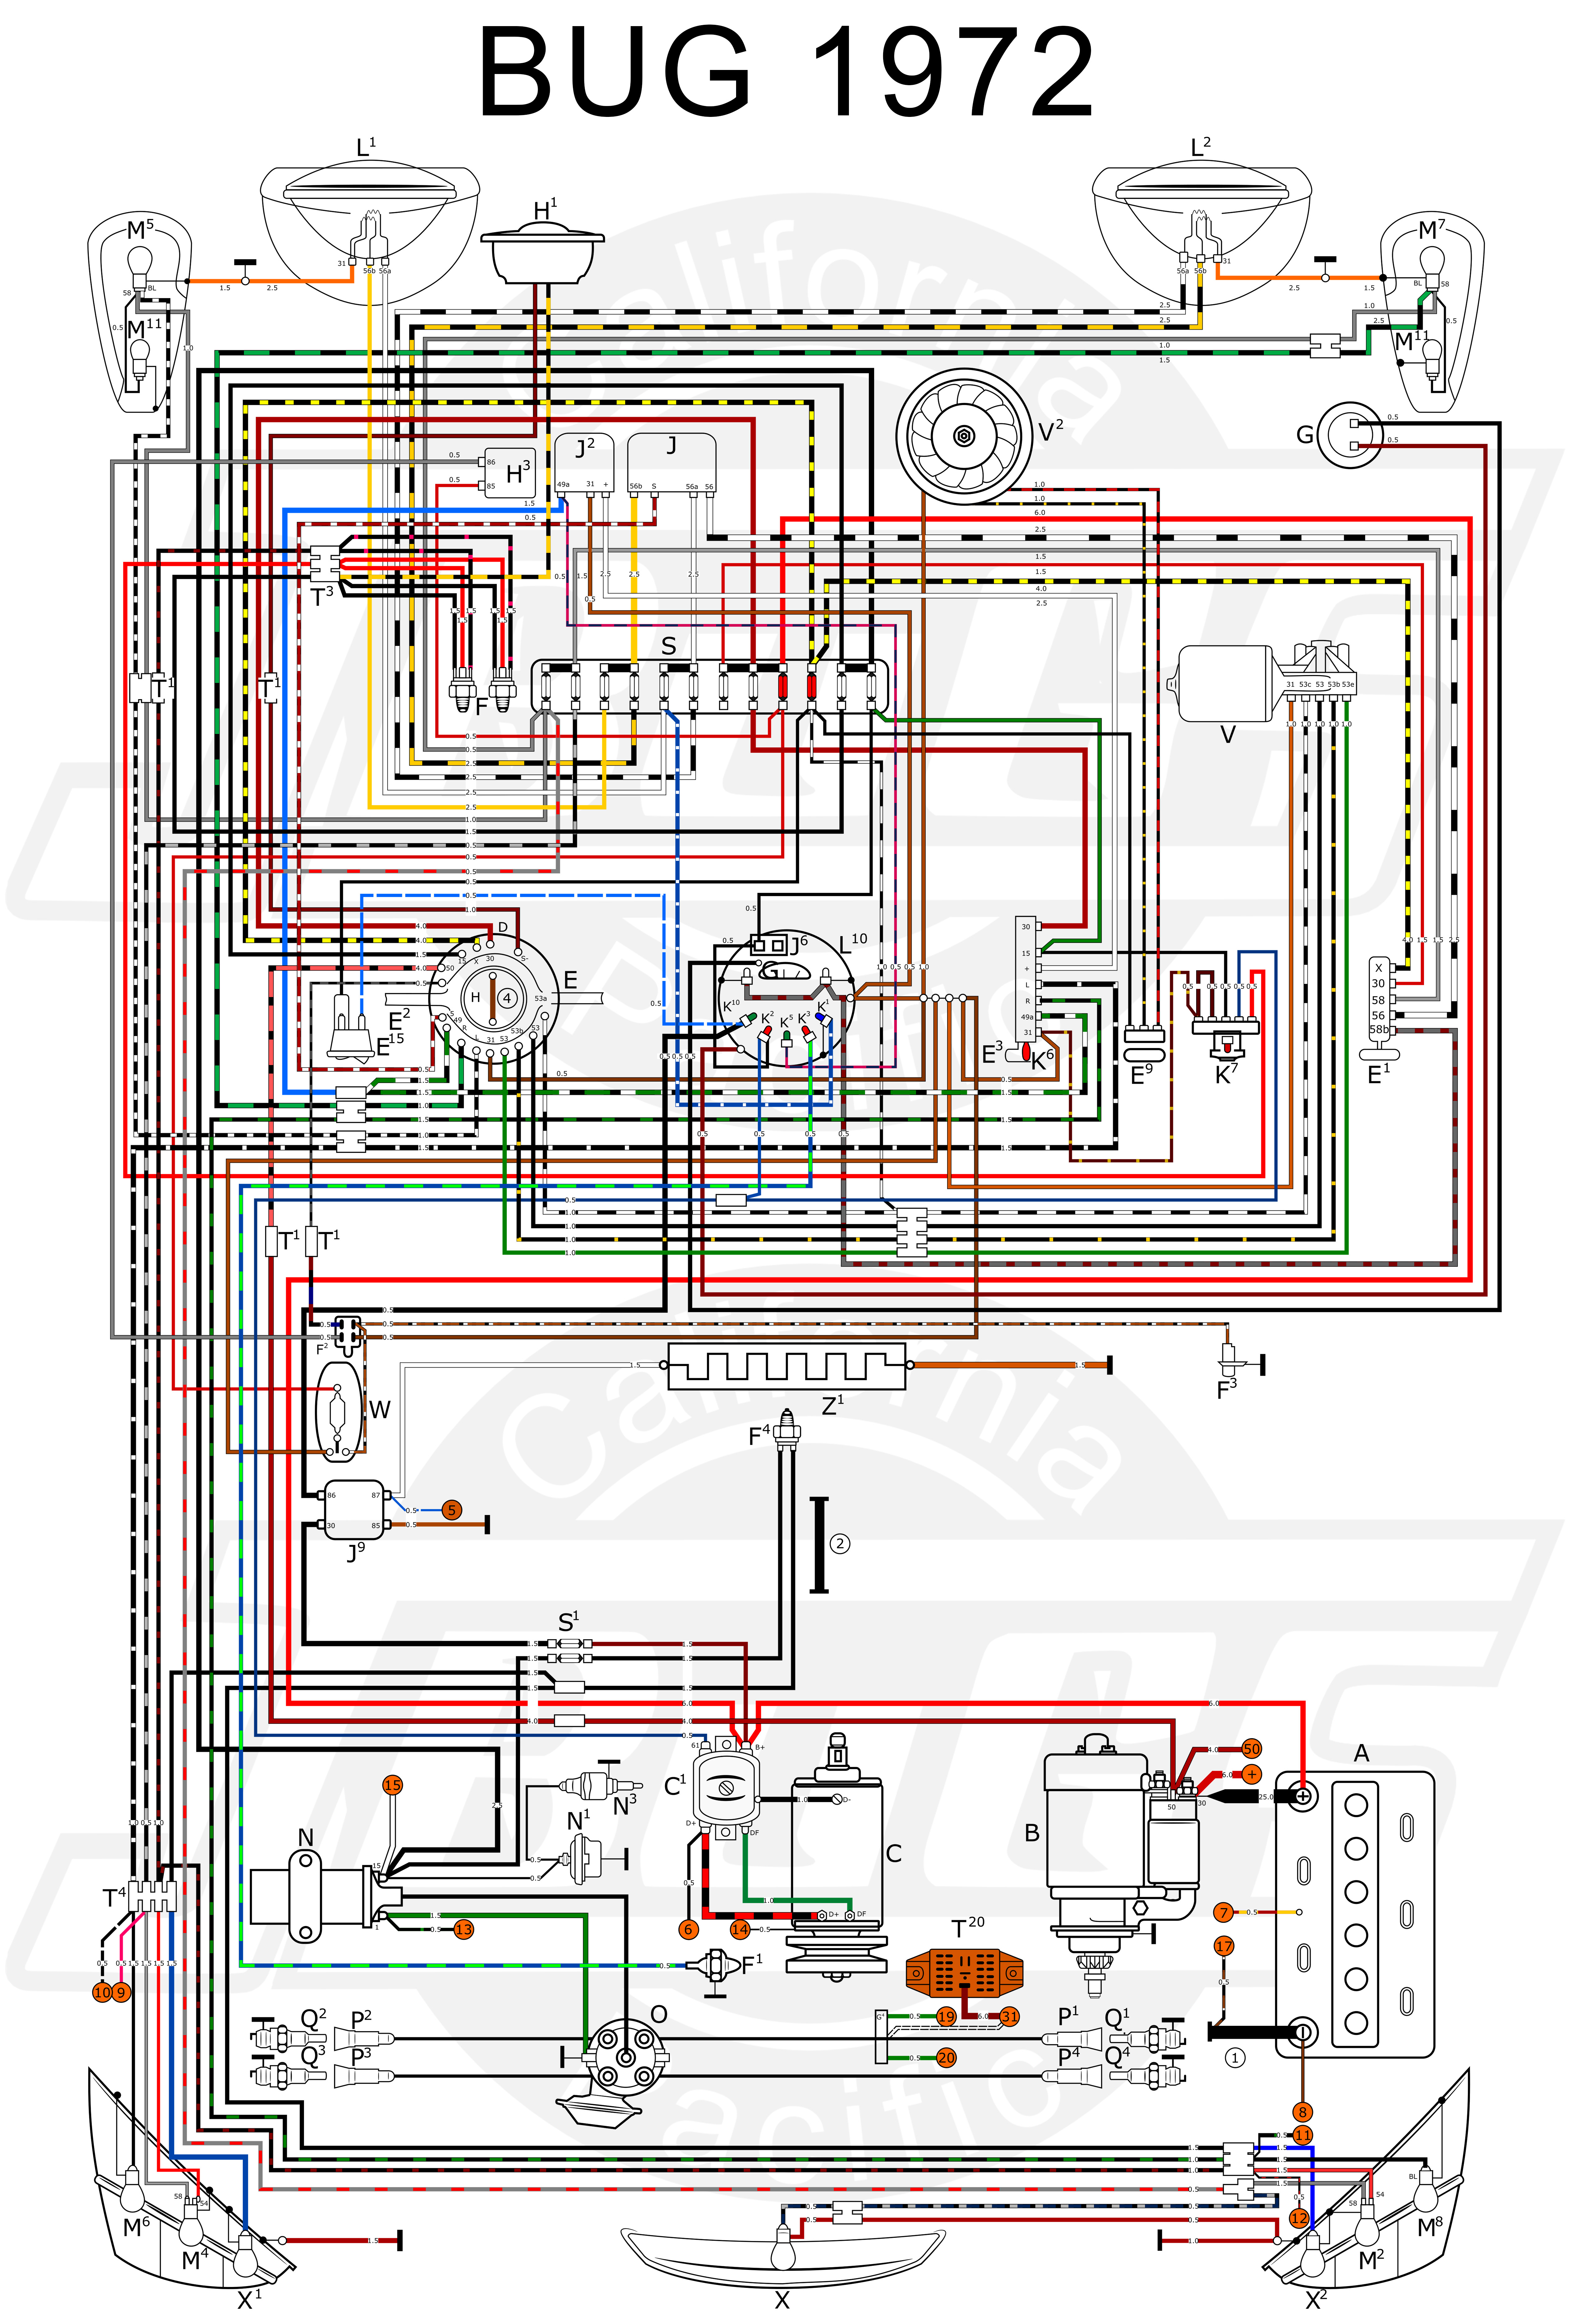 WRG-9867] Volkswagen Touran Wiring Diagram on